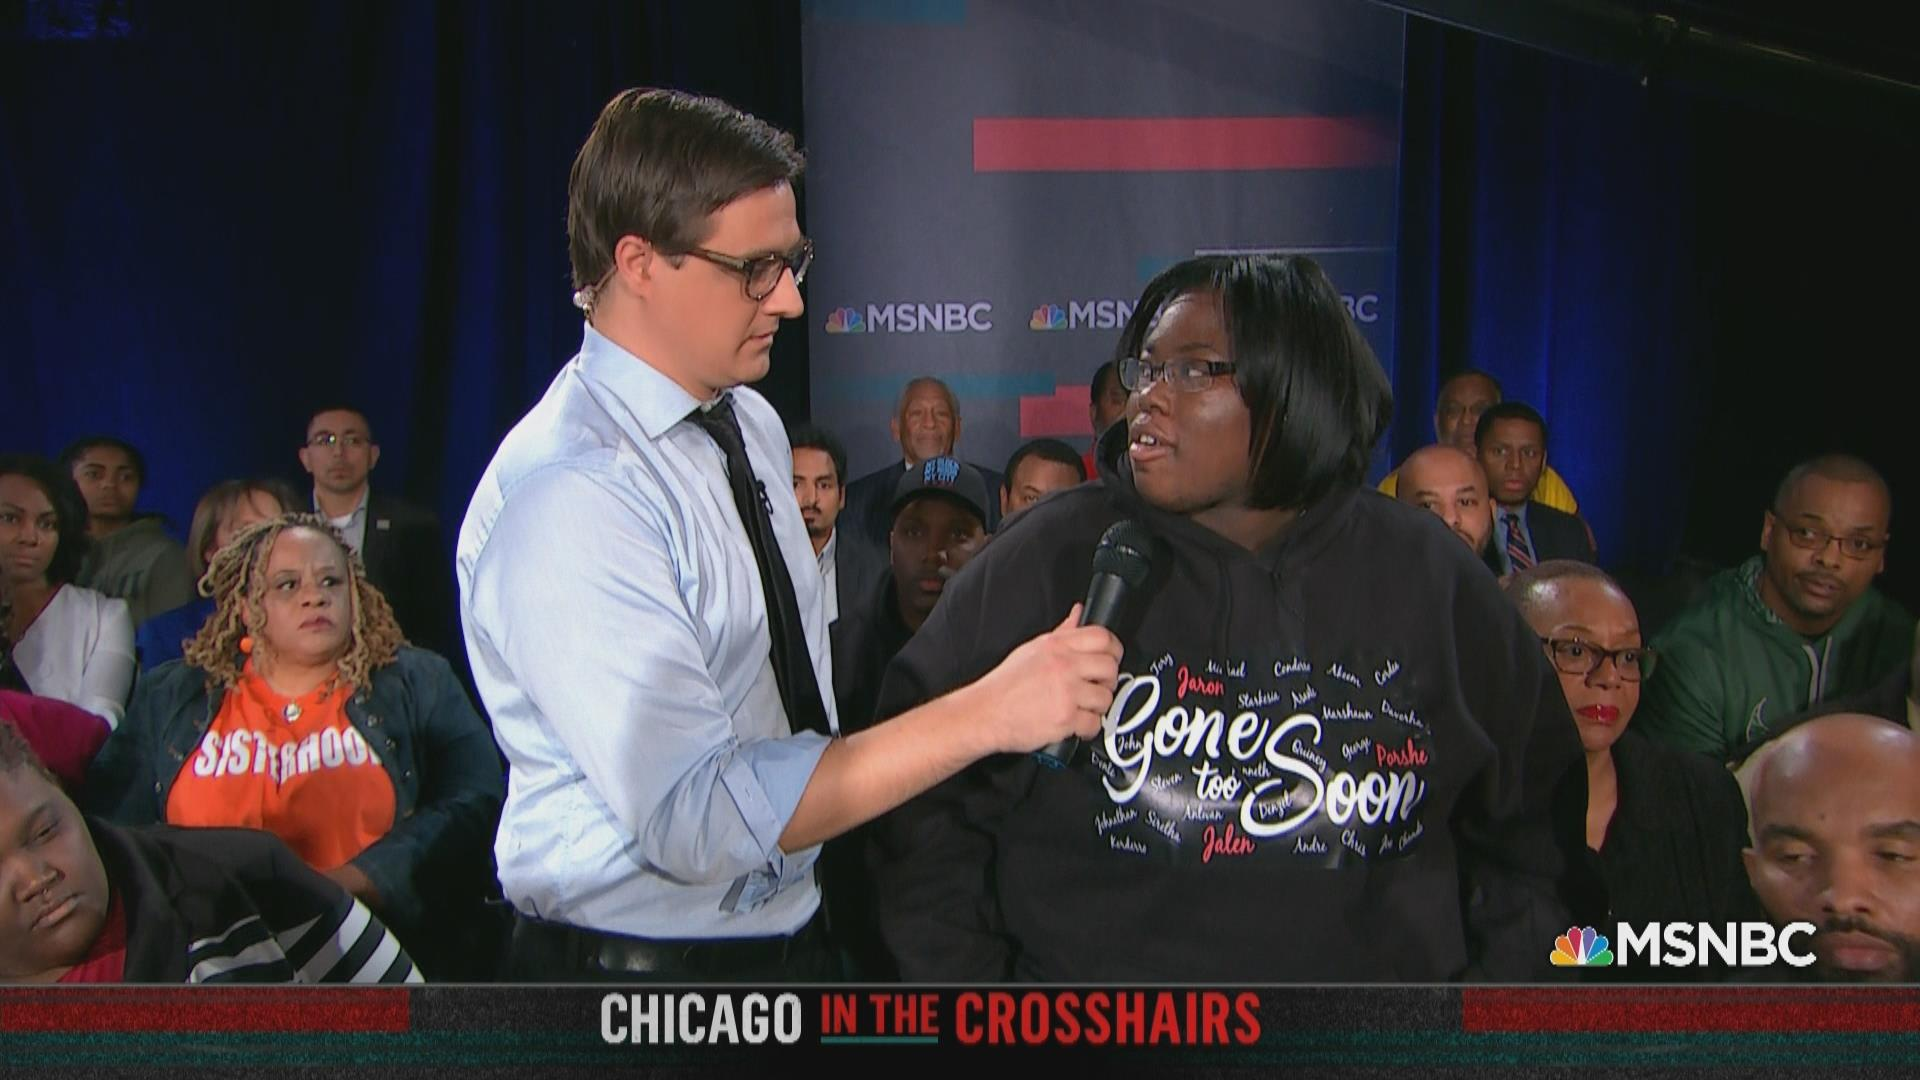 Chicagoan in town hall: 'We're begging'...